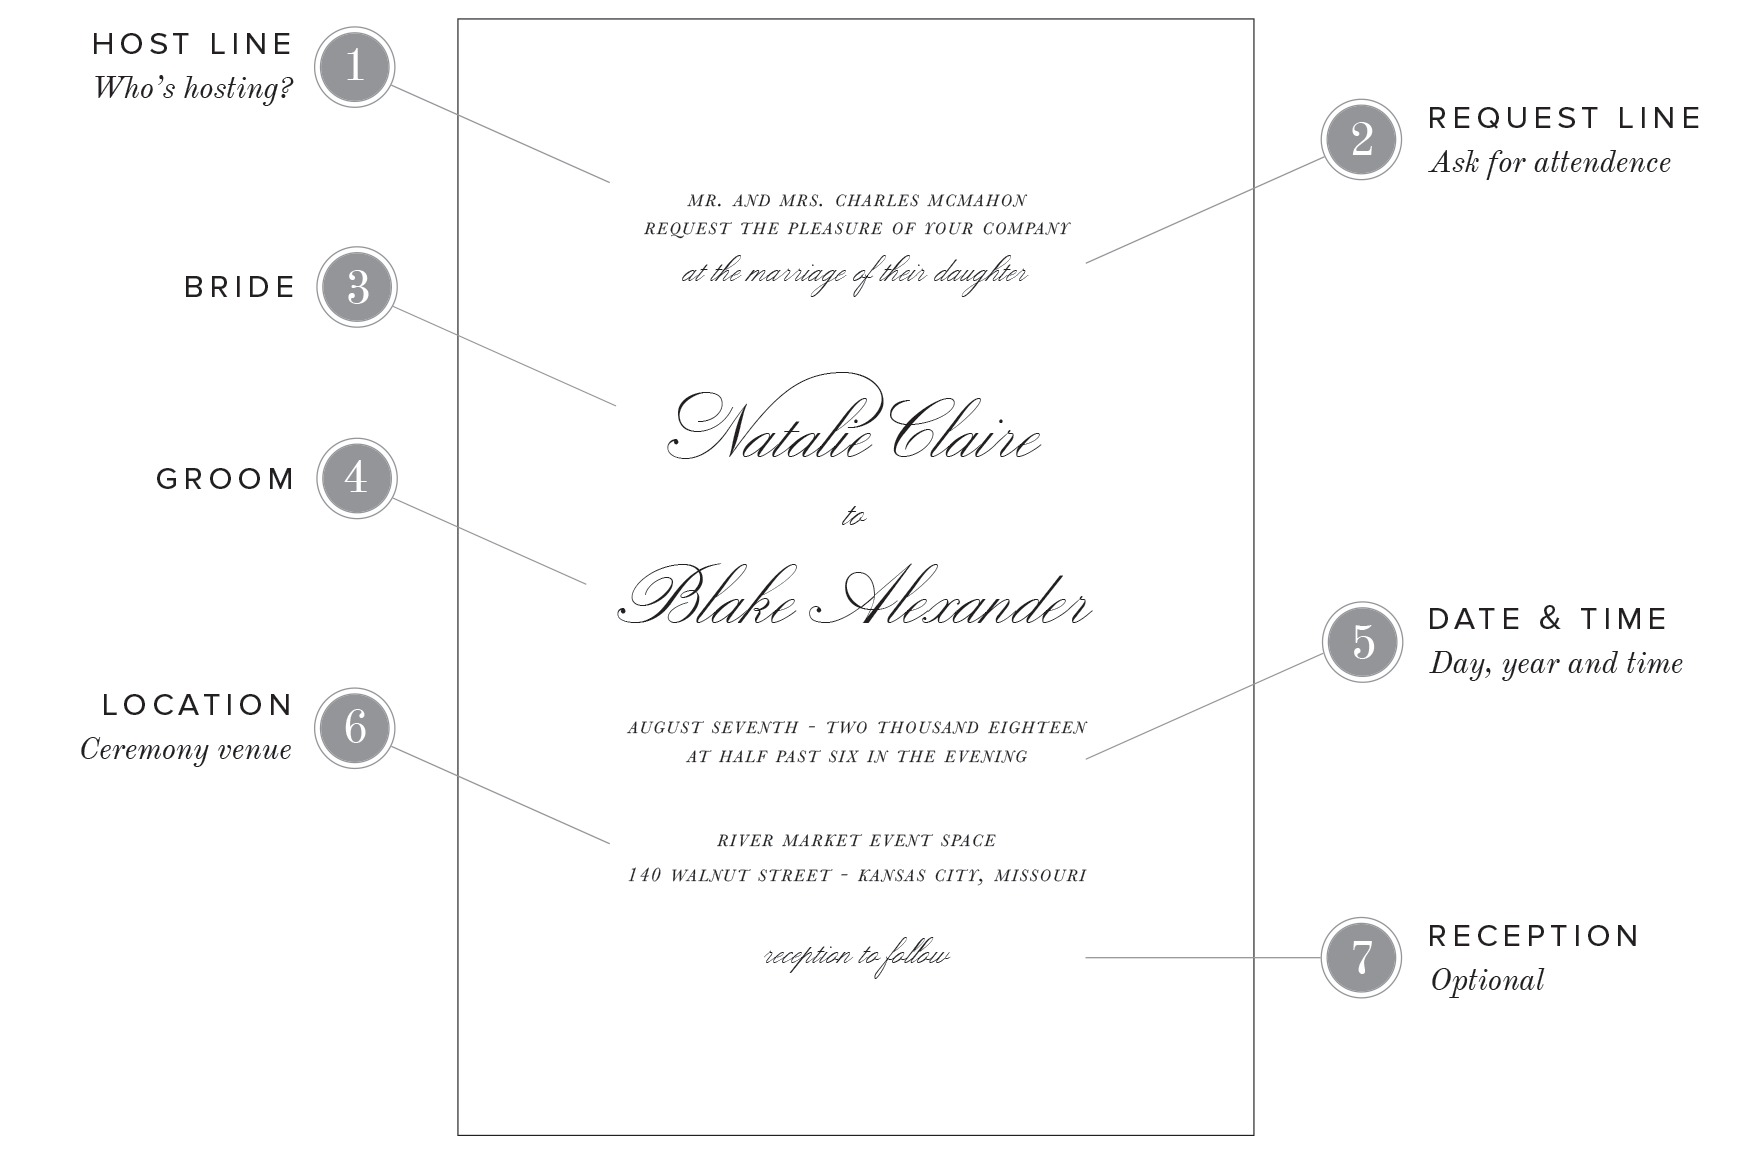 wedding invitation wording examples  shine wedding invitations, invitation samples